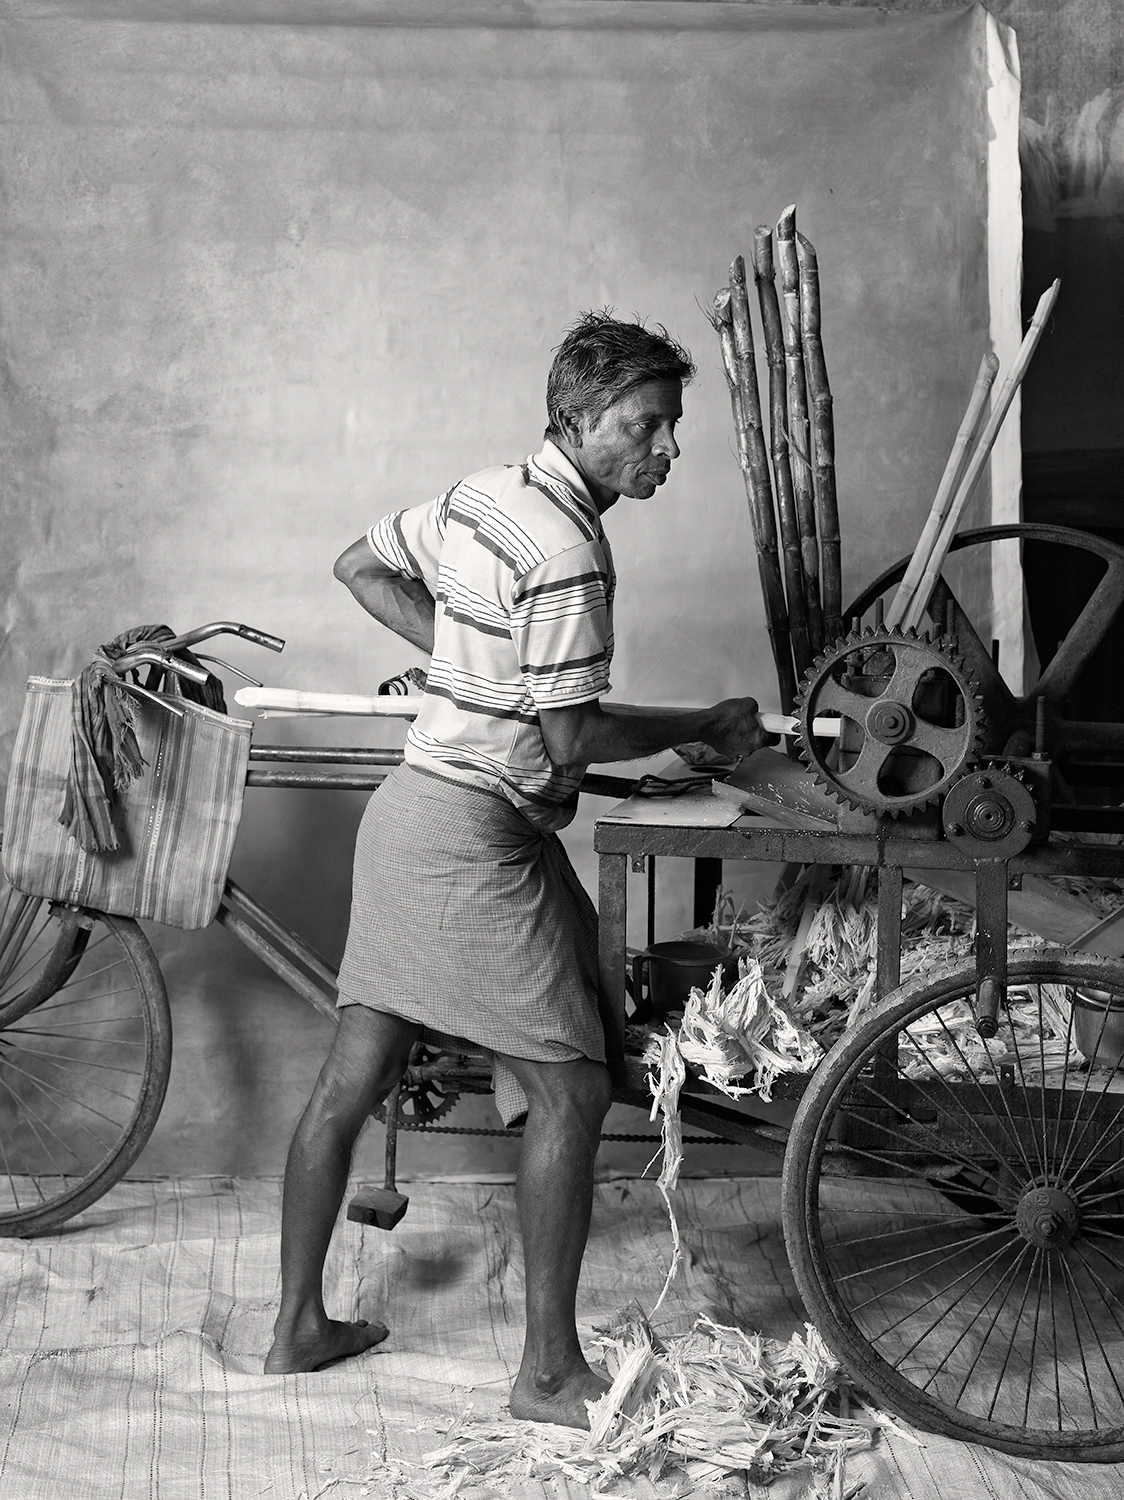 SUGARCANE JUICE SELLER, $24 WEEKLY, 2012